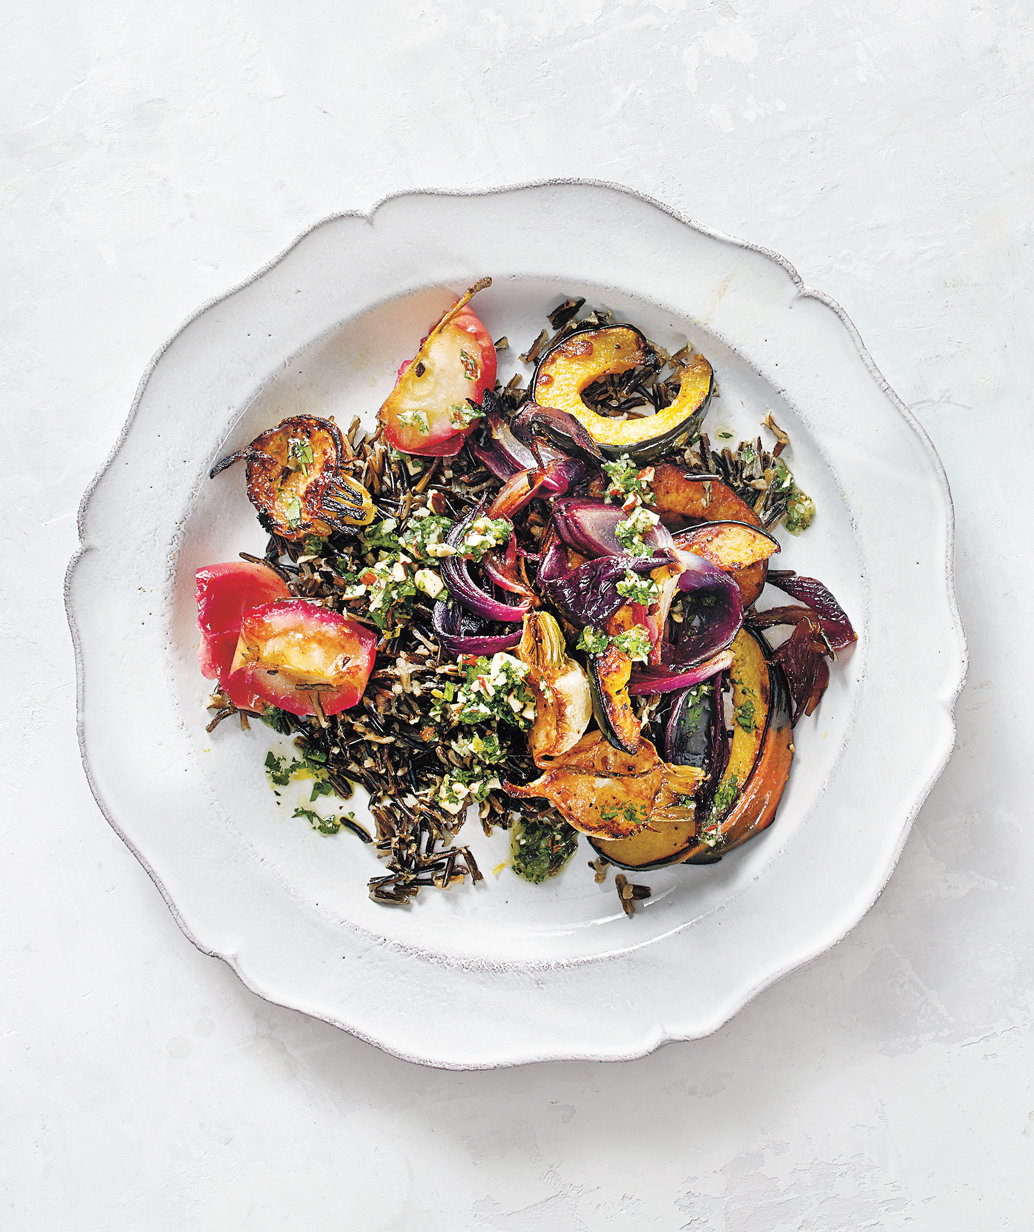 roasted-vegetable-wild-rice-salad-almond-parsley